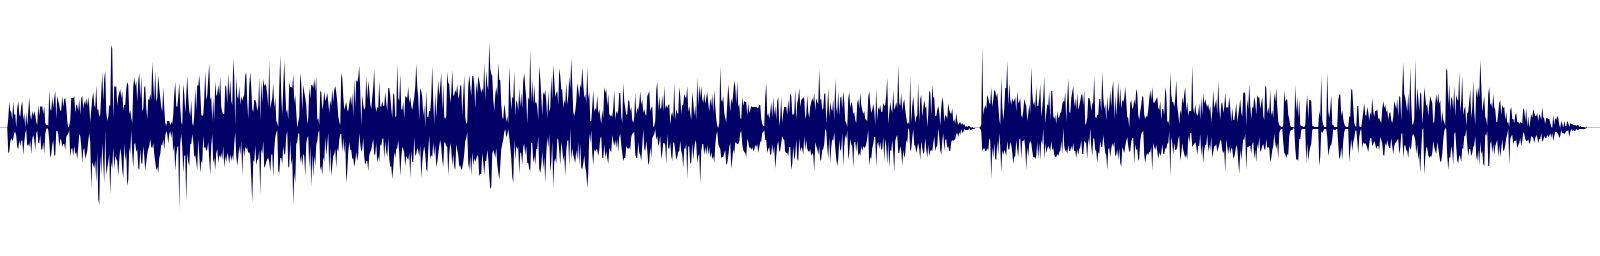 waveform of track #129378